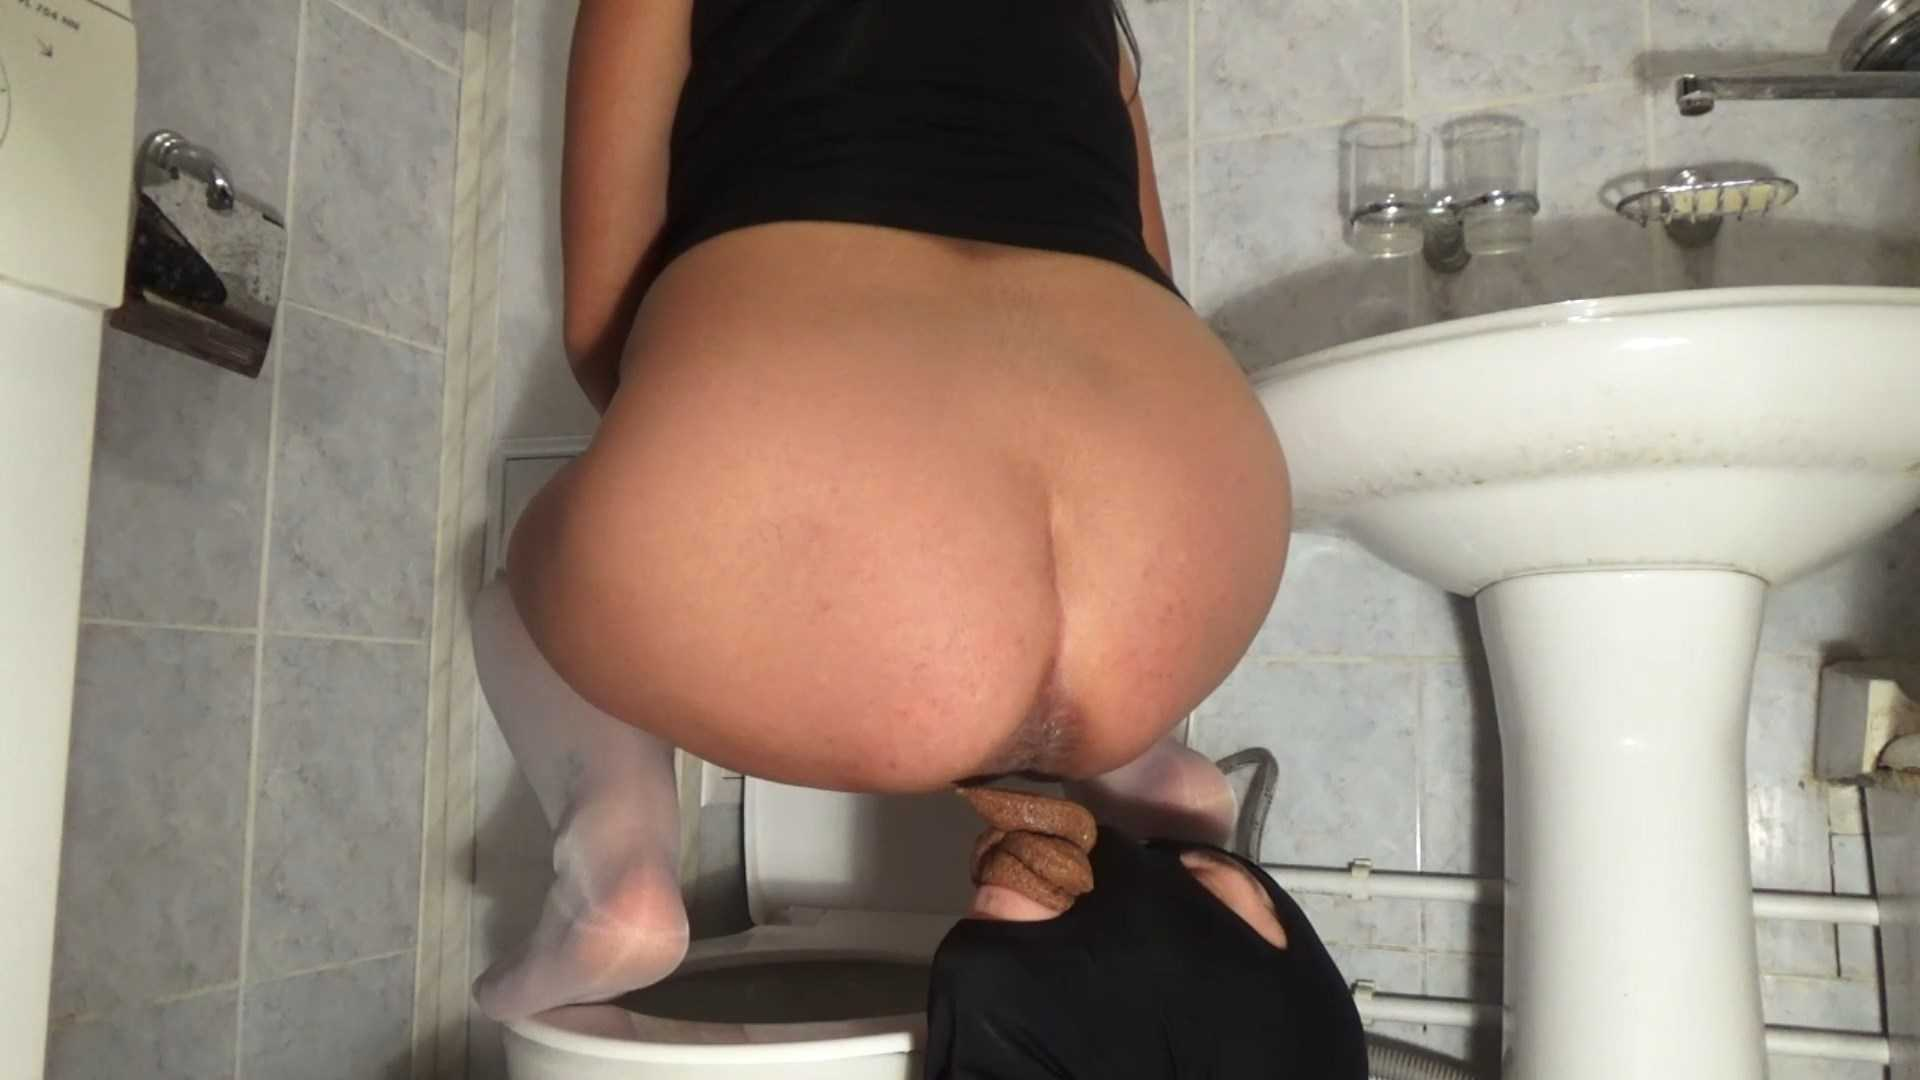 Mistress Nikole shit in the mouth | Breakfast of shit| Toilet mouth | Full HD 1080p | April 25, 2017